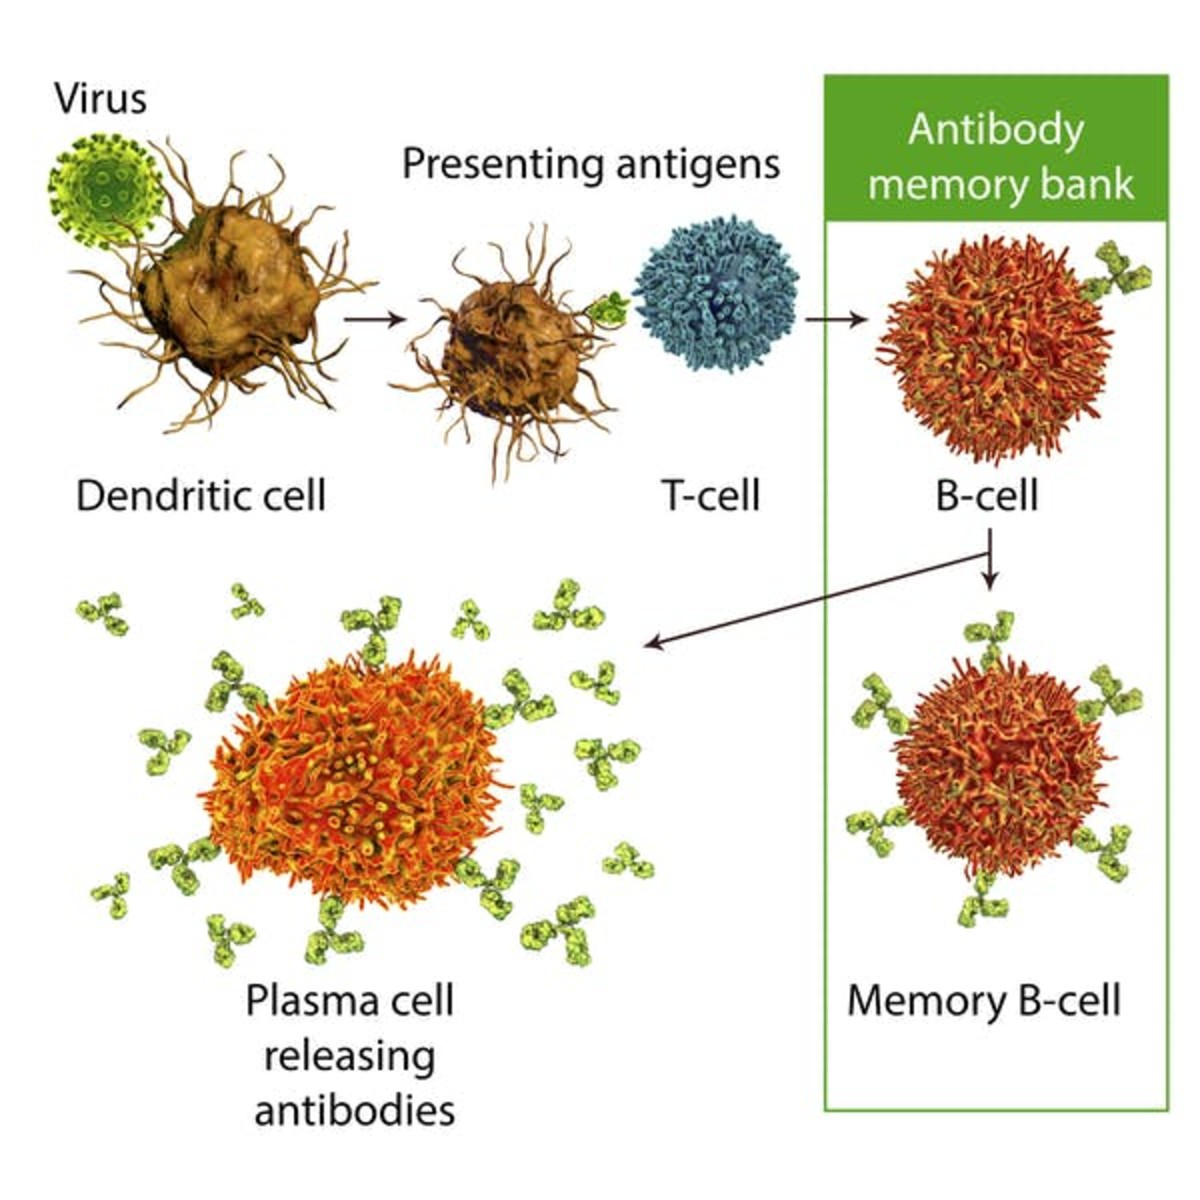 Dendritic cells recognize viruses and present information about the spike protein to T-cells. T-cells provide information about the viral spike protein to B-cells, which are transformed to memory B-cells that store information about the virus. When this memory B-cell is activated with an infection or the second dose of the vaccine, this causes some of the B-cells to change into plasma B-cells that secrete protective antibodies that fight the virus. Kateryna Kon/Science Photo Library via Getty Images